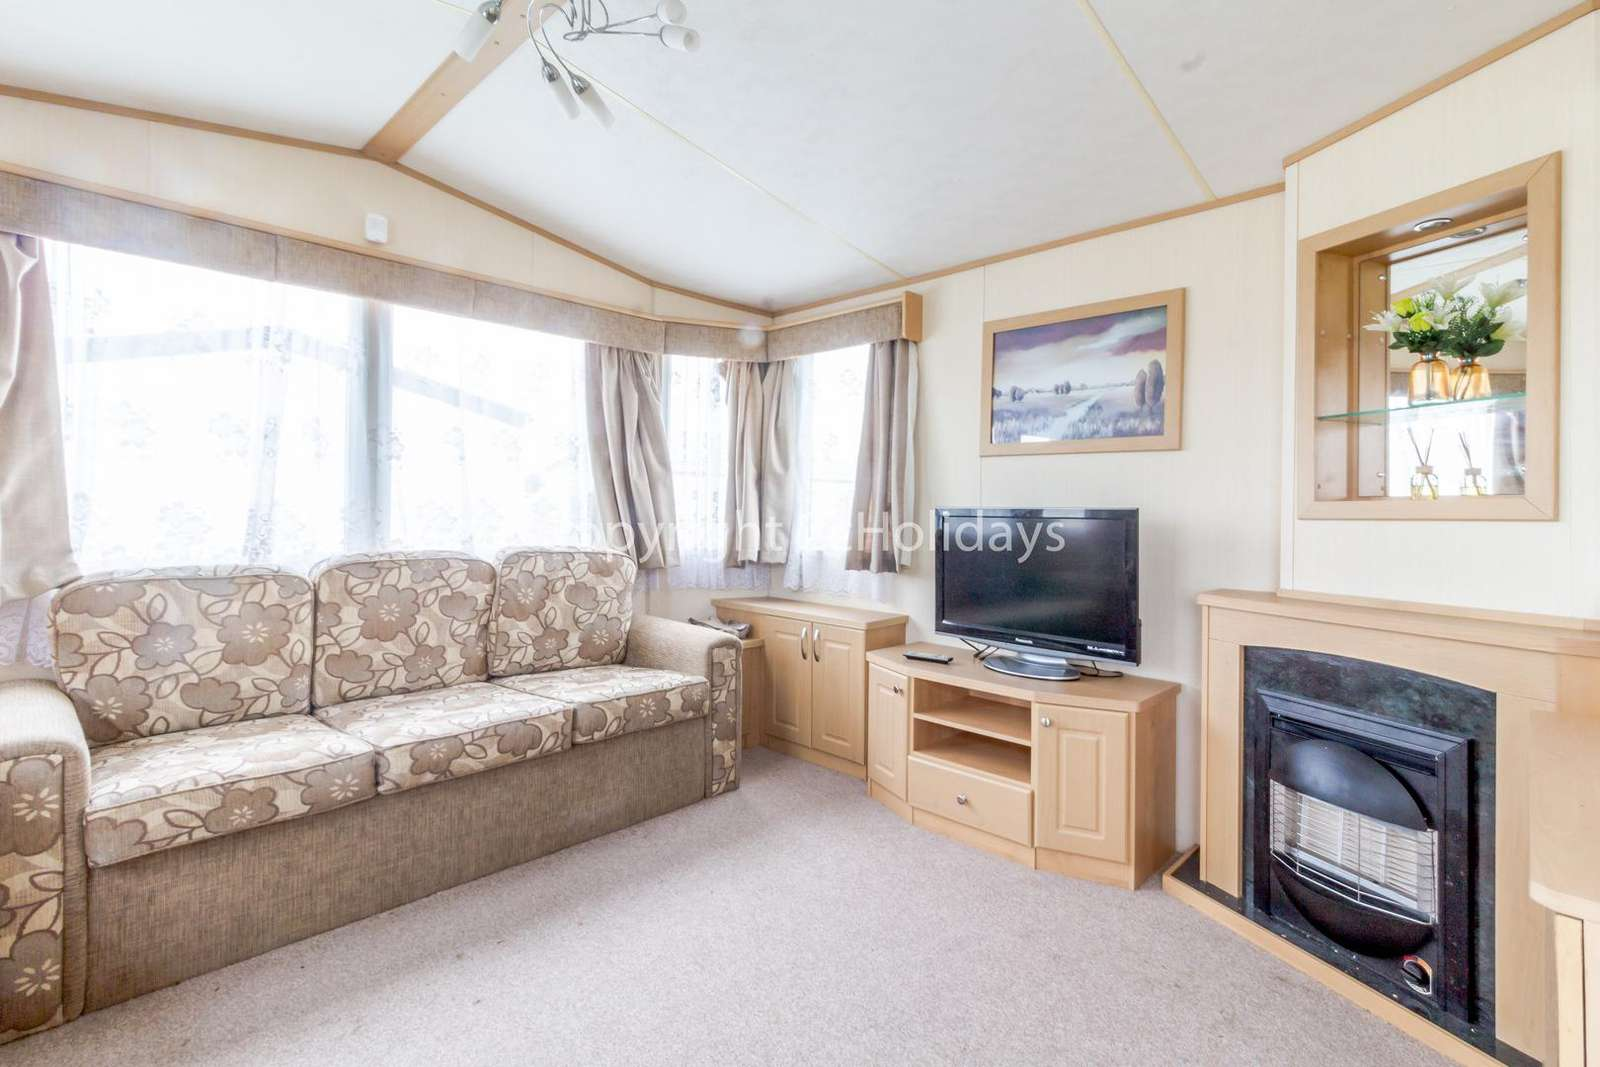 Cosy feel with a modern TV and a gas fire